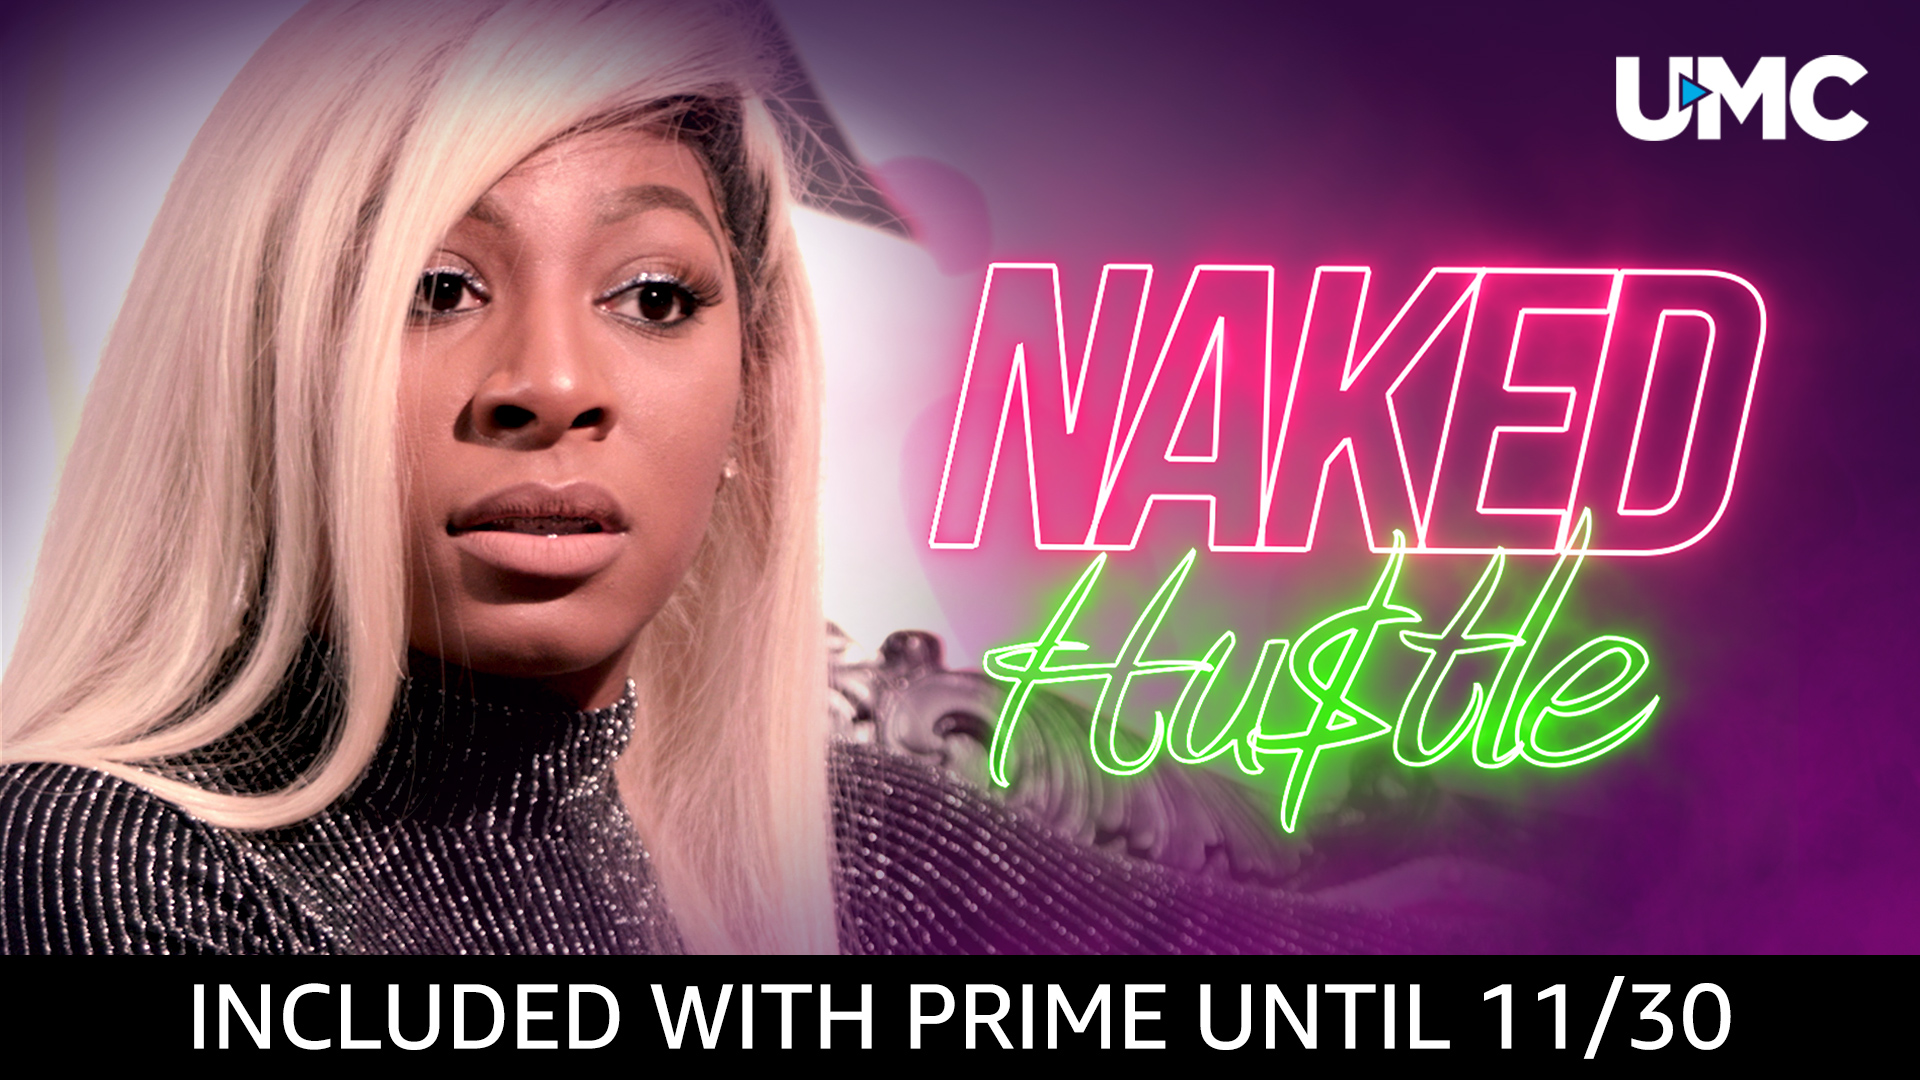 Naked Hustle - Season 1